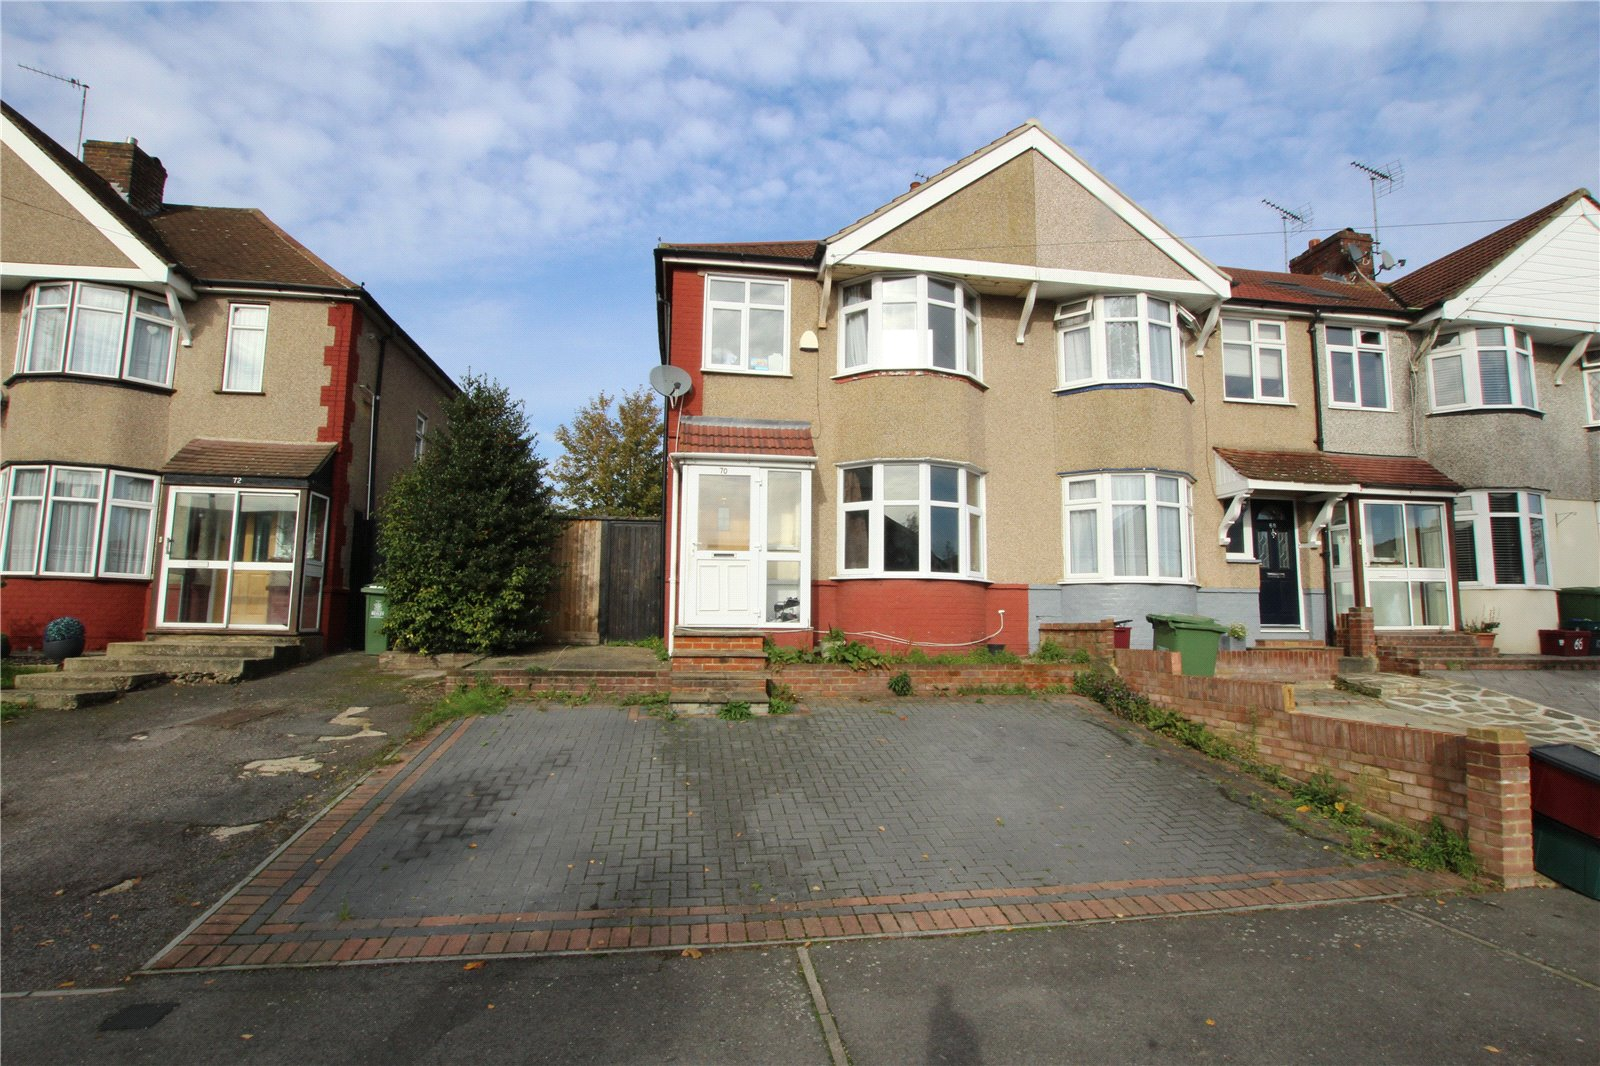 Buckingham Avenue, Welling, Kent, DA16